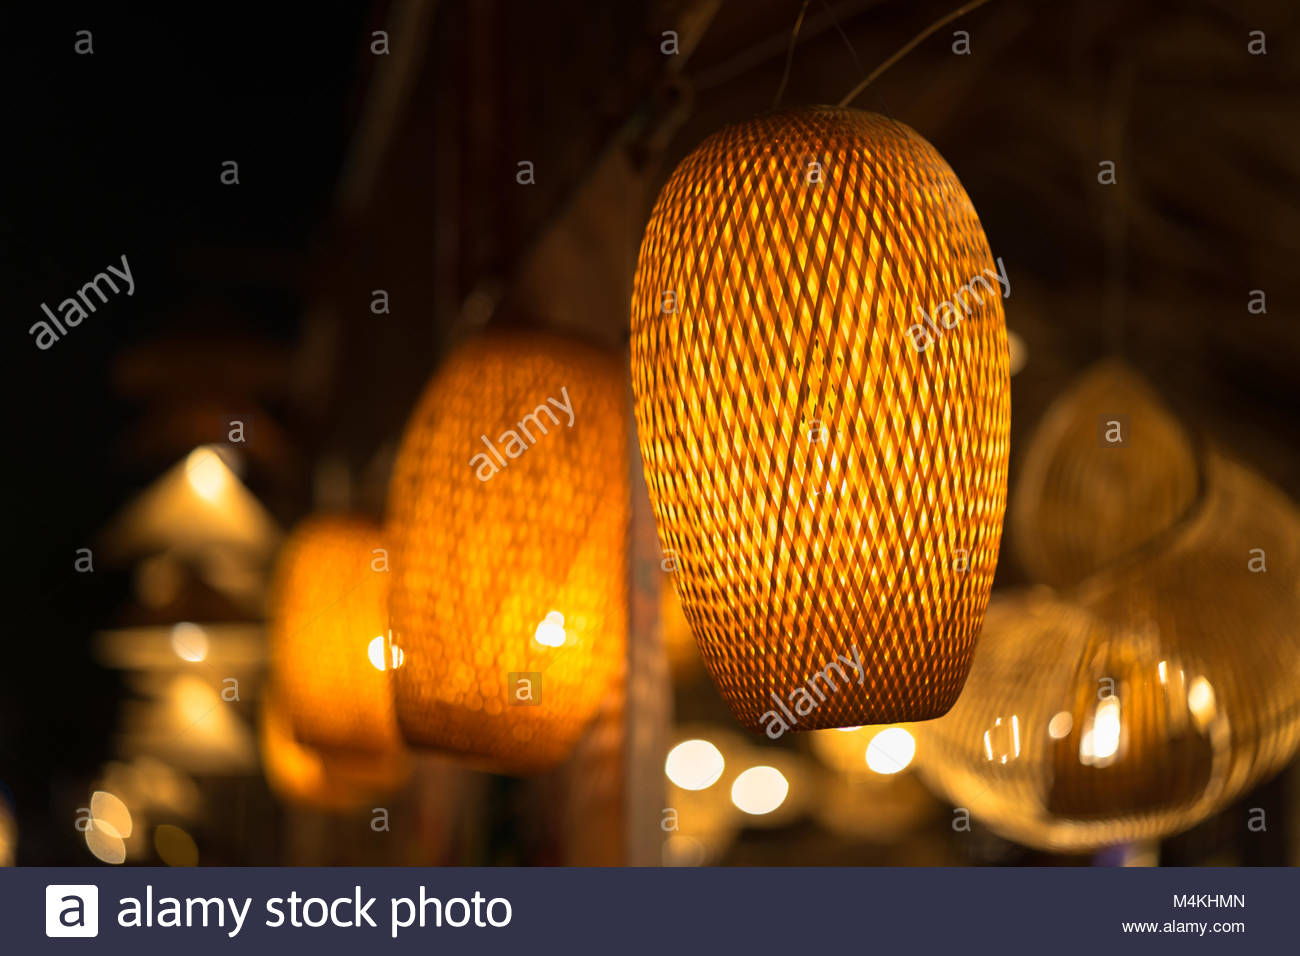 https://c8.alamy.com/comp/M4KHMN/decorating-hanging-lantern-lamps-in-wooden-wicker-made-from-bamboo-M4KHMN.jpg